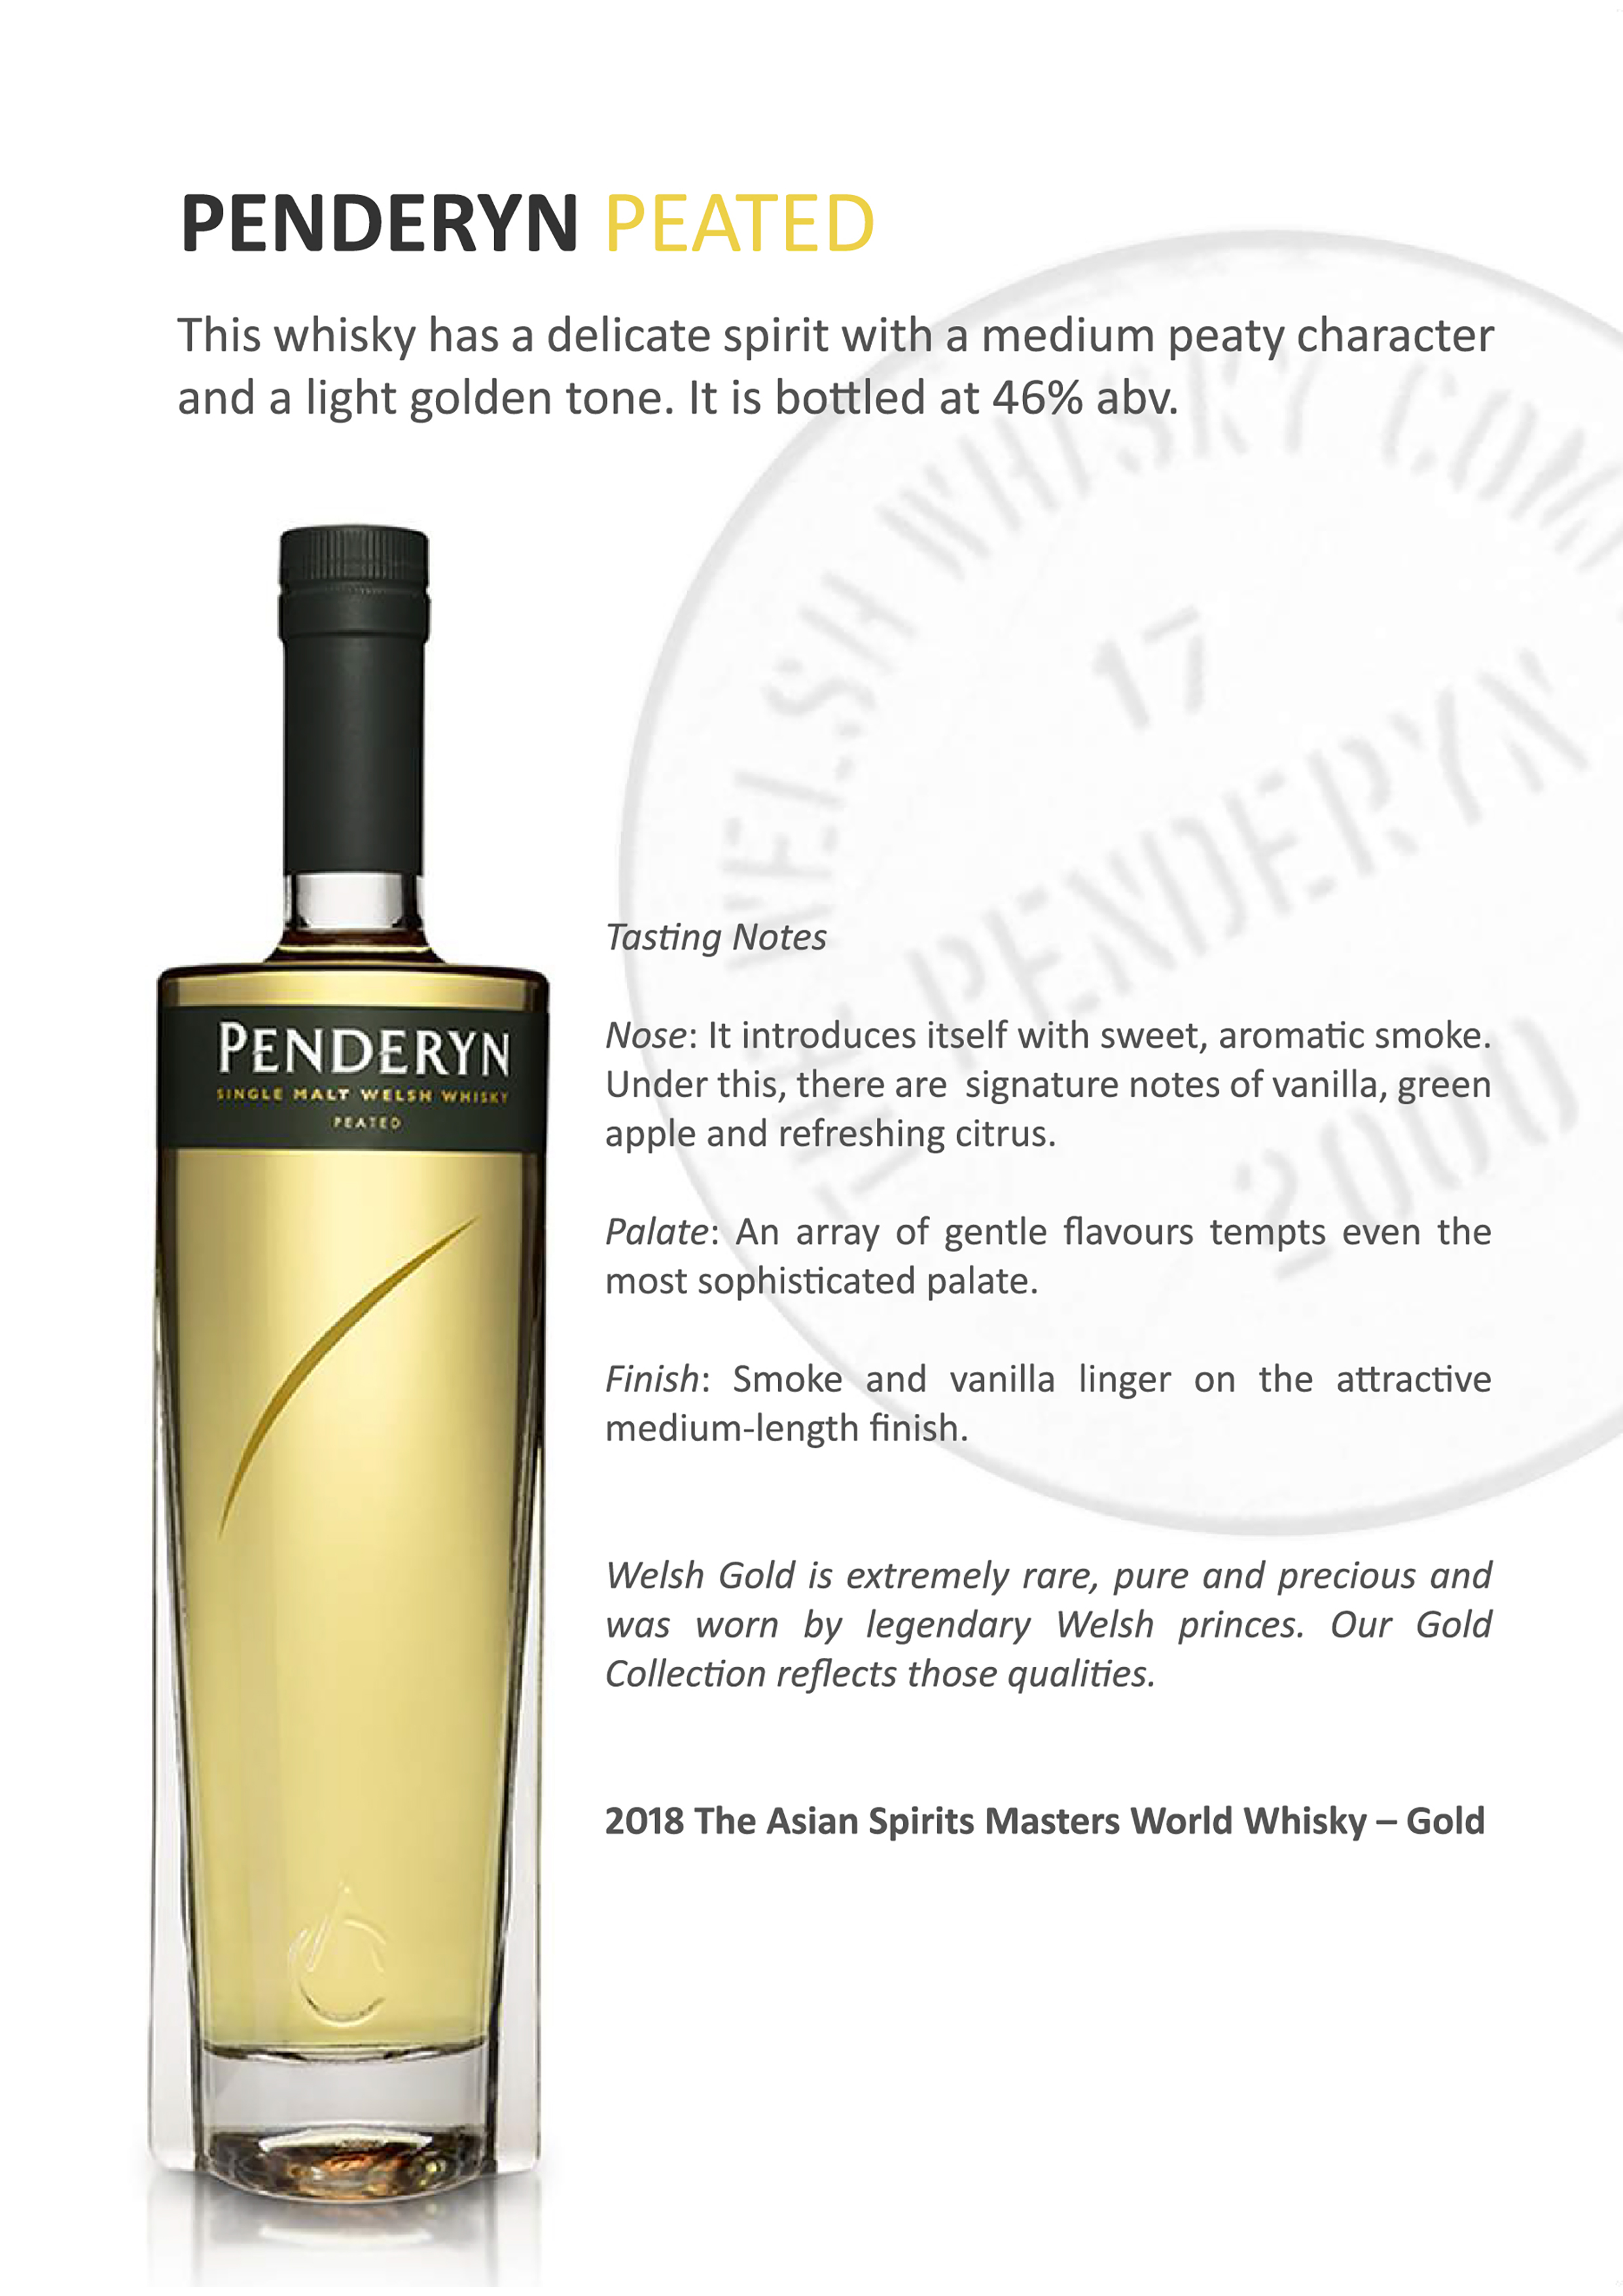 Penderyn Peated Single Malt Welsh Whisky Tasting Note